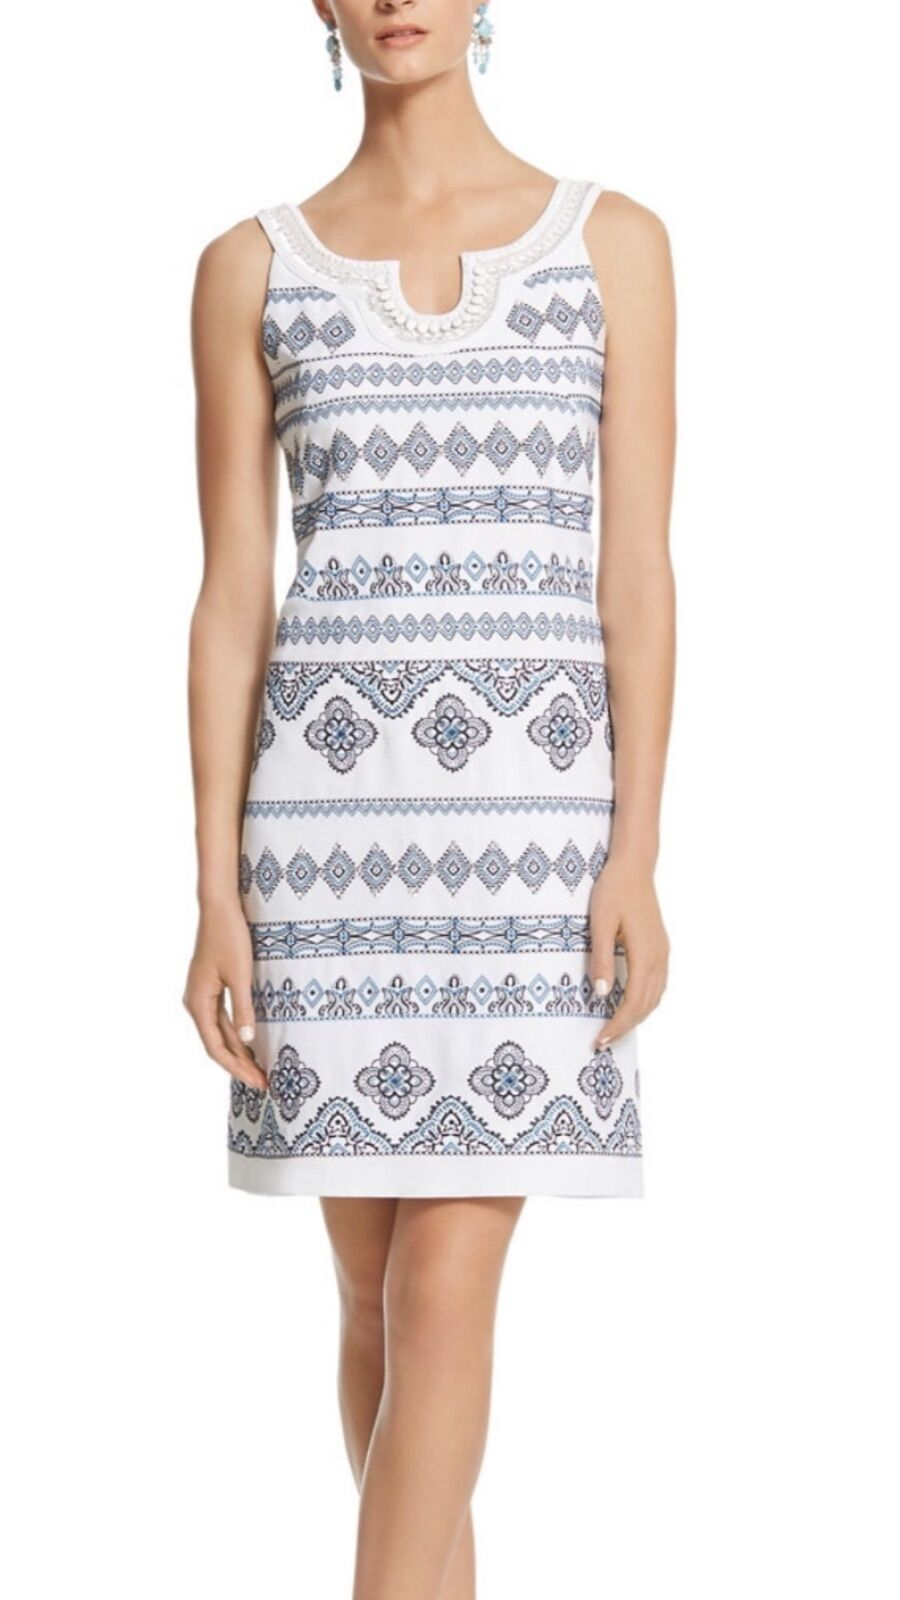 WHBM EMBROIDERED SHIFT DRESS SIZE 2 NEW SOPT R 280